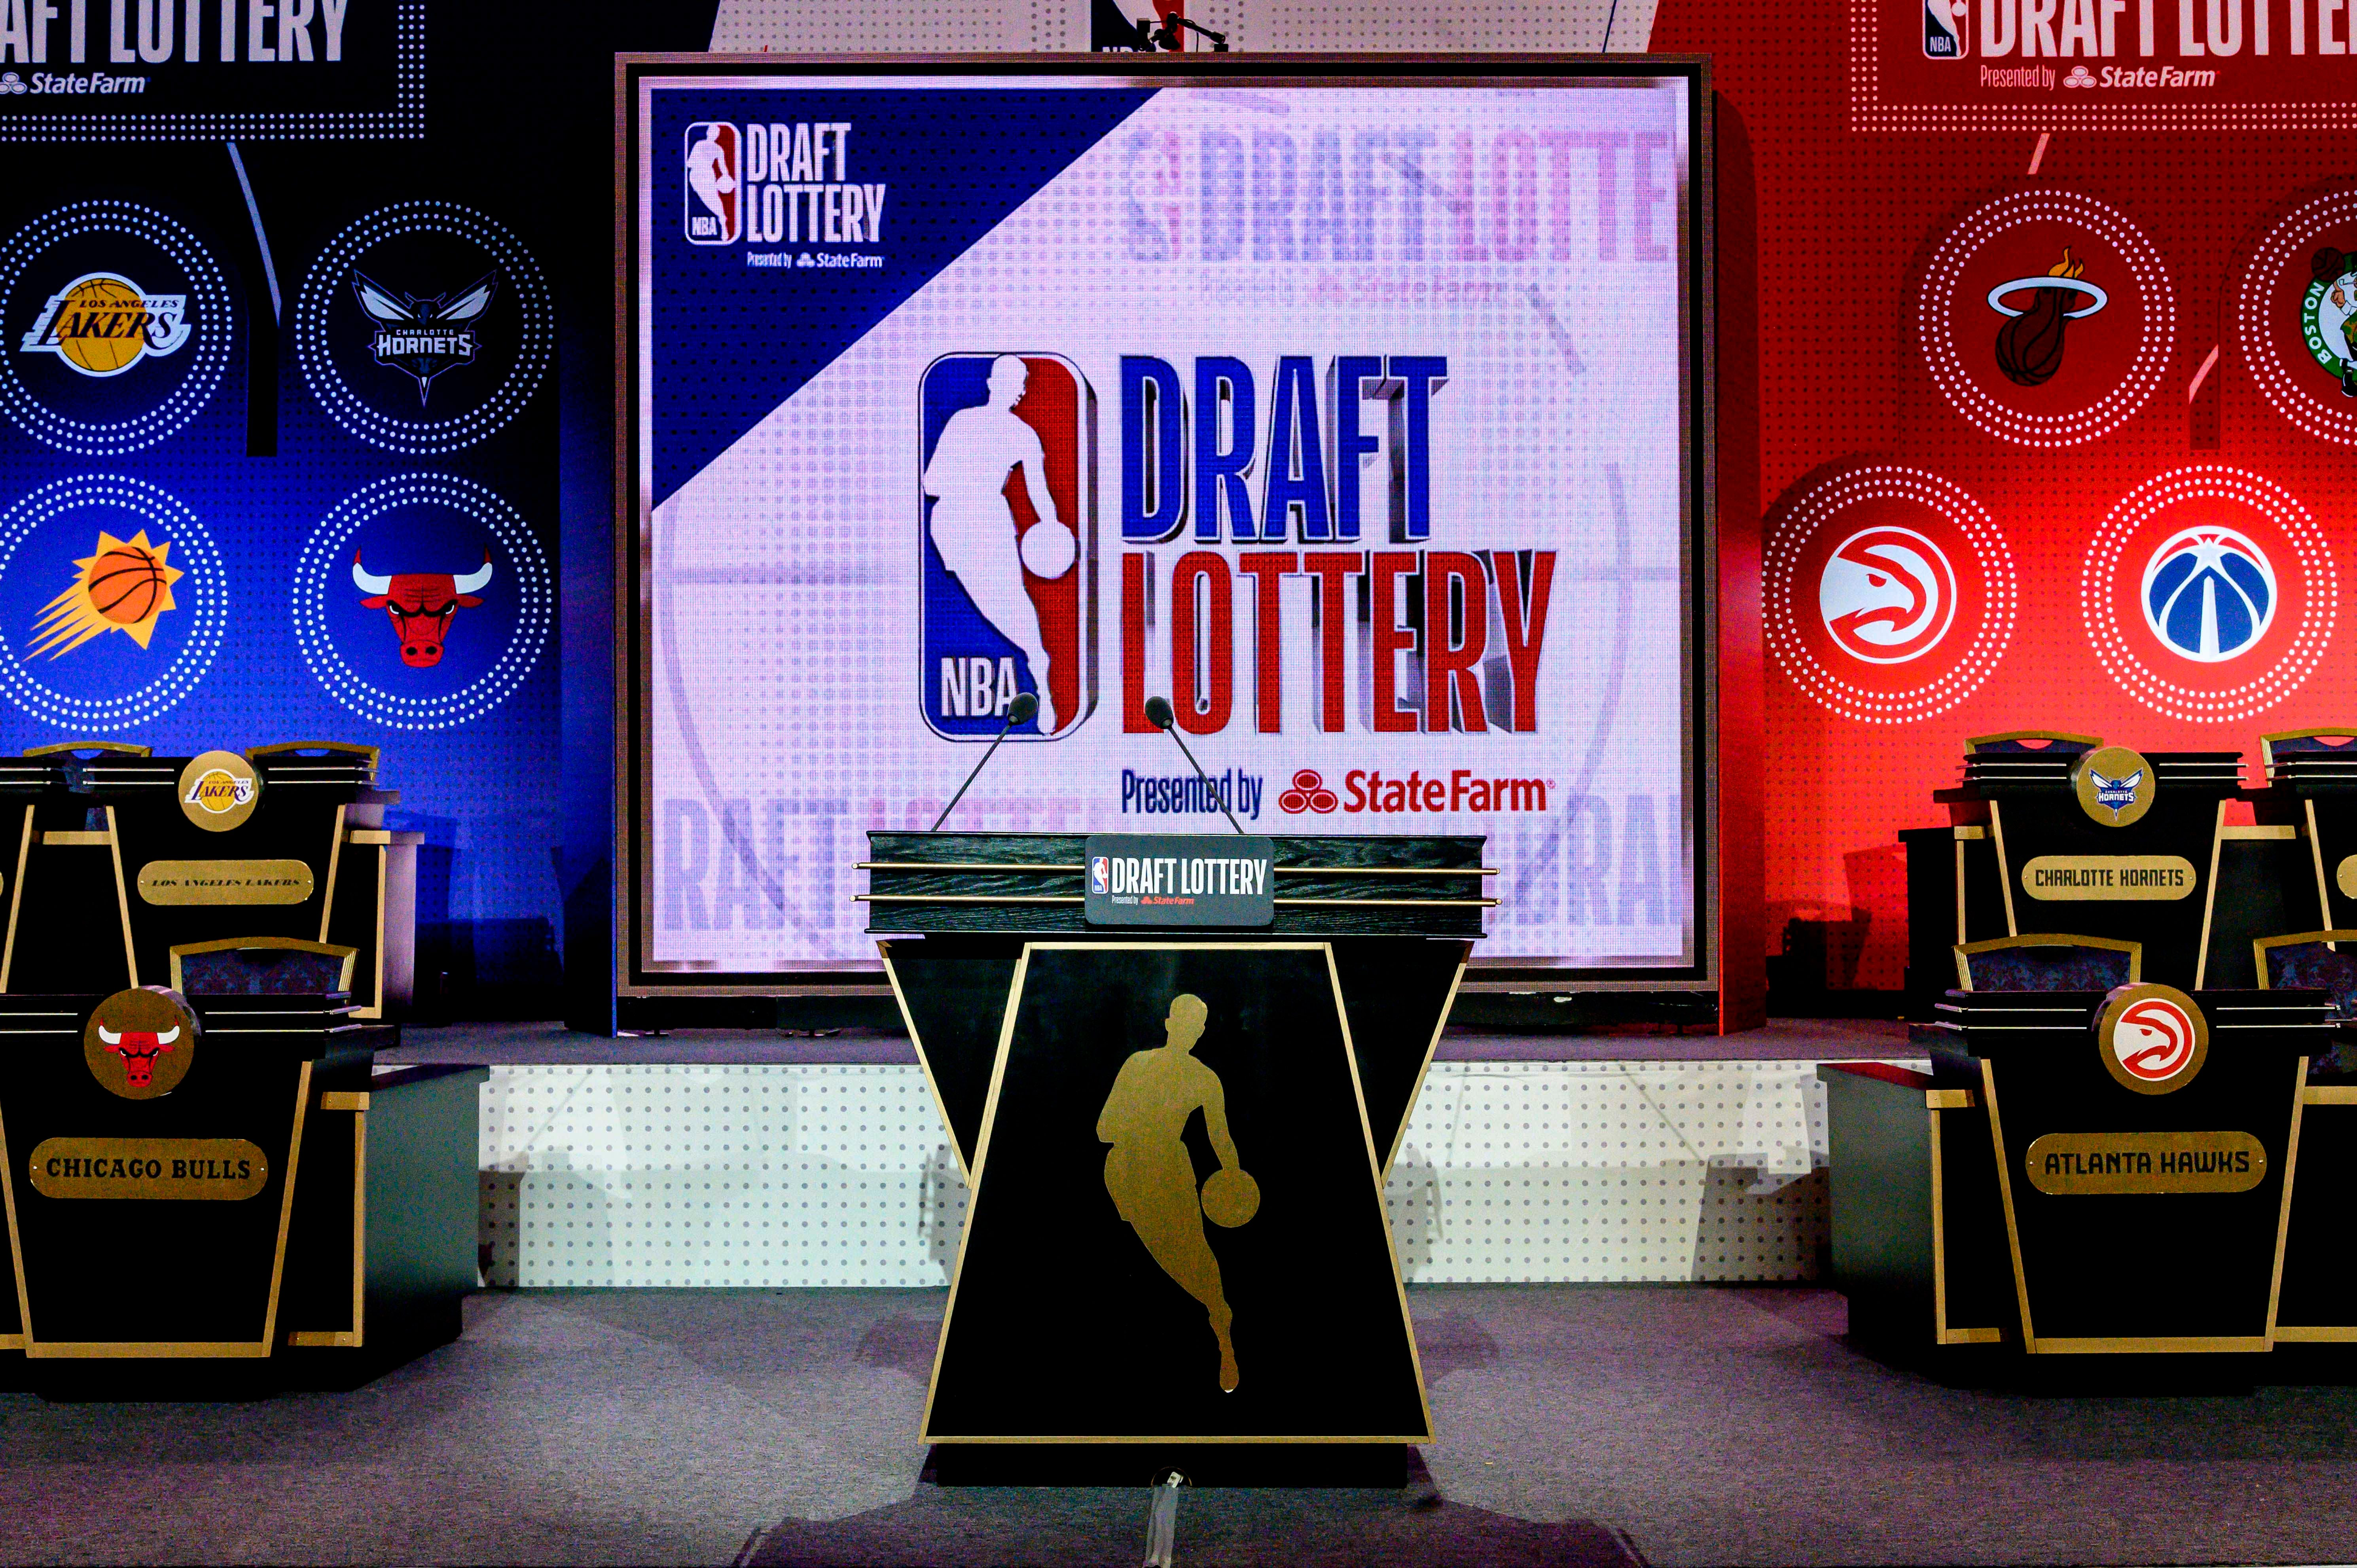 New Orleans Pelicans win NBA draft lottery, get No. 1 overall pick